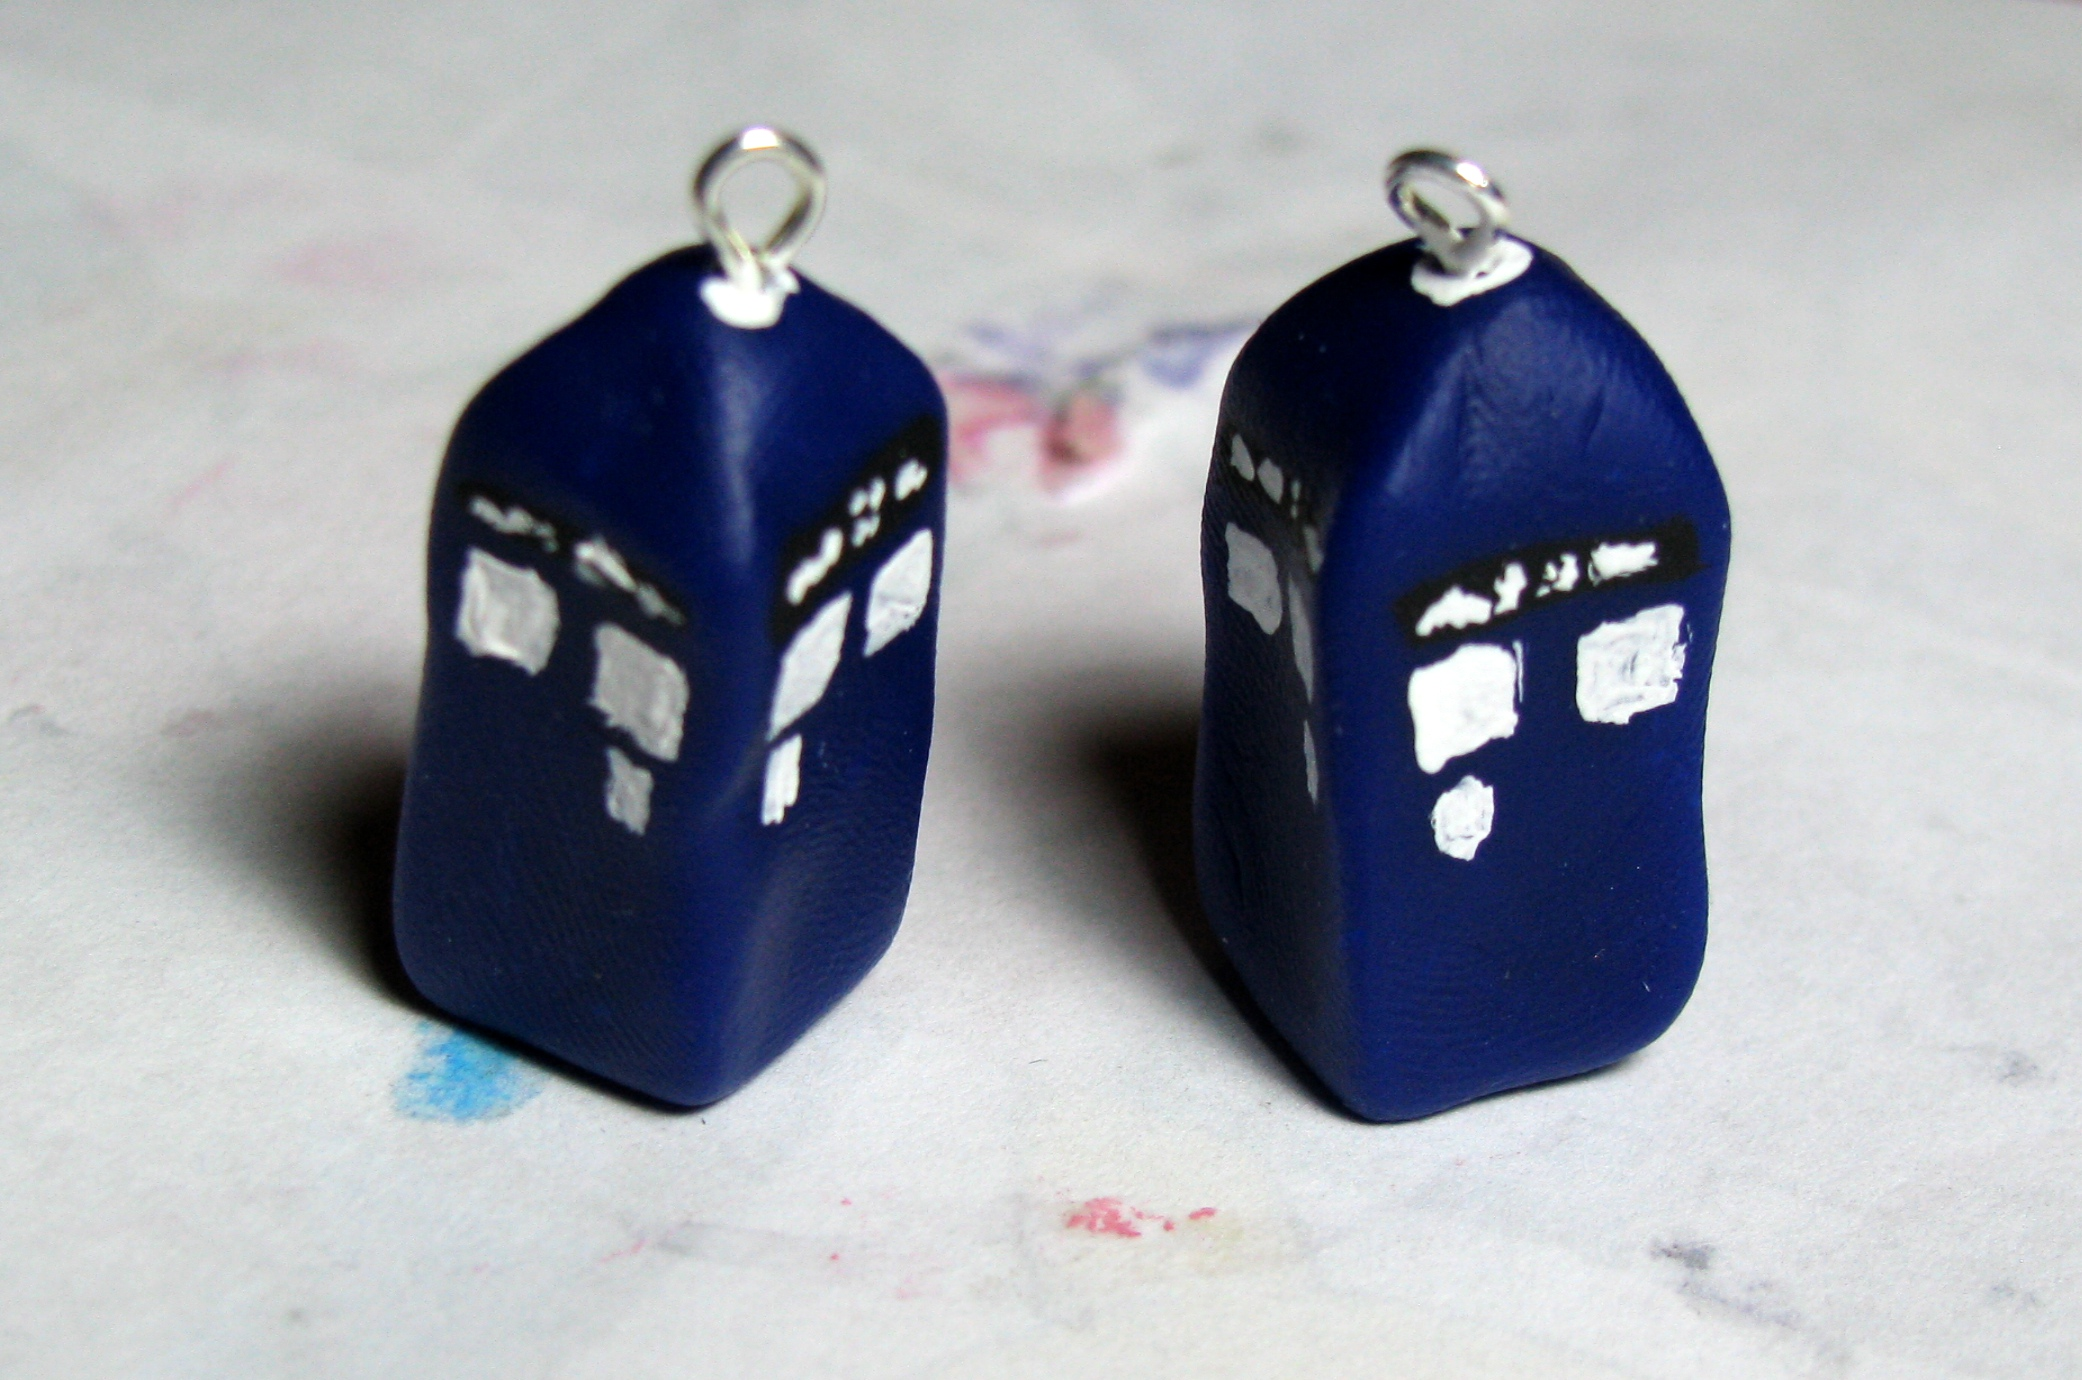 TARDIS Clip Art http://www.storenvy.com/products/250223-tardis-earrings